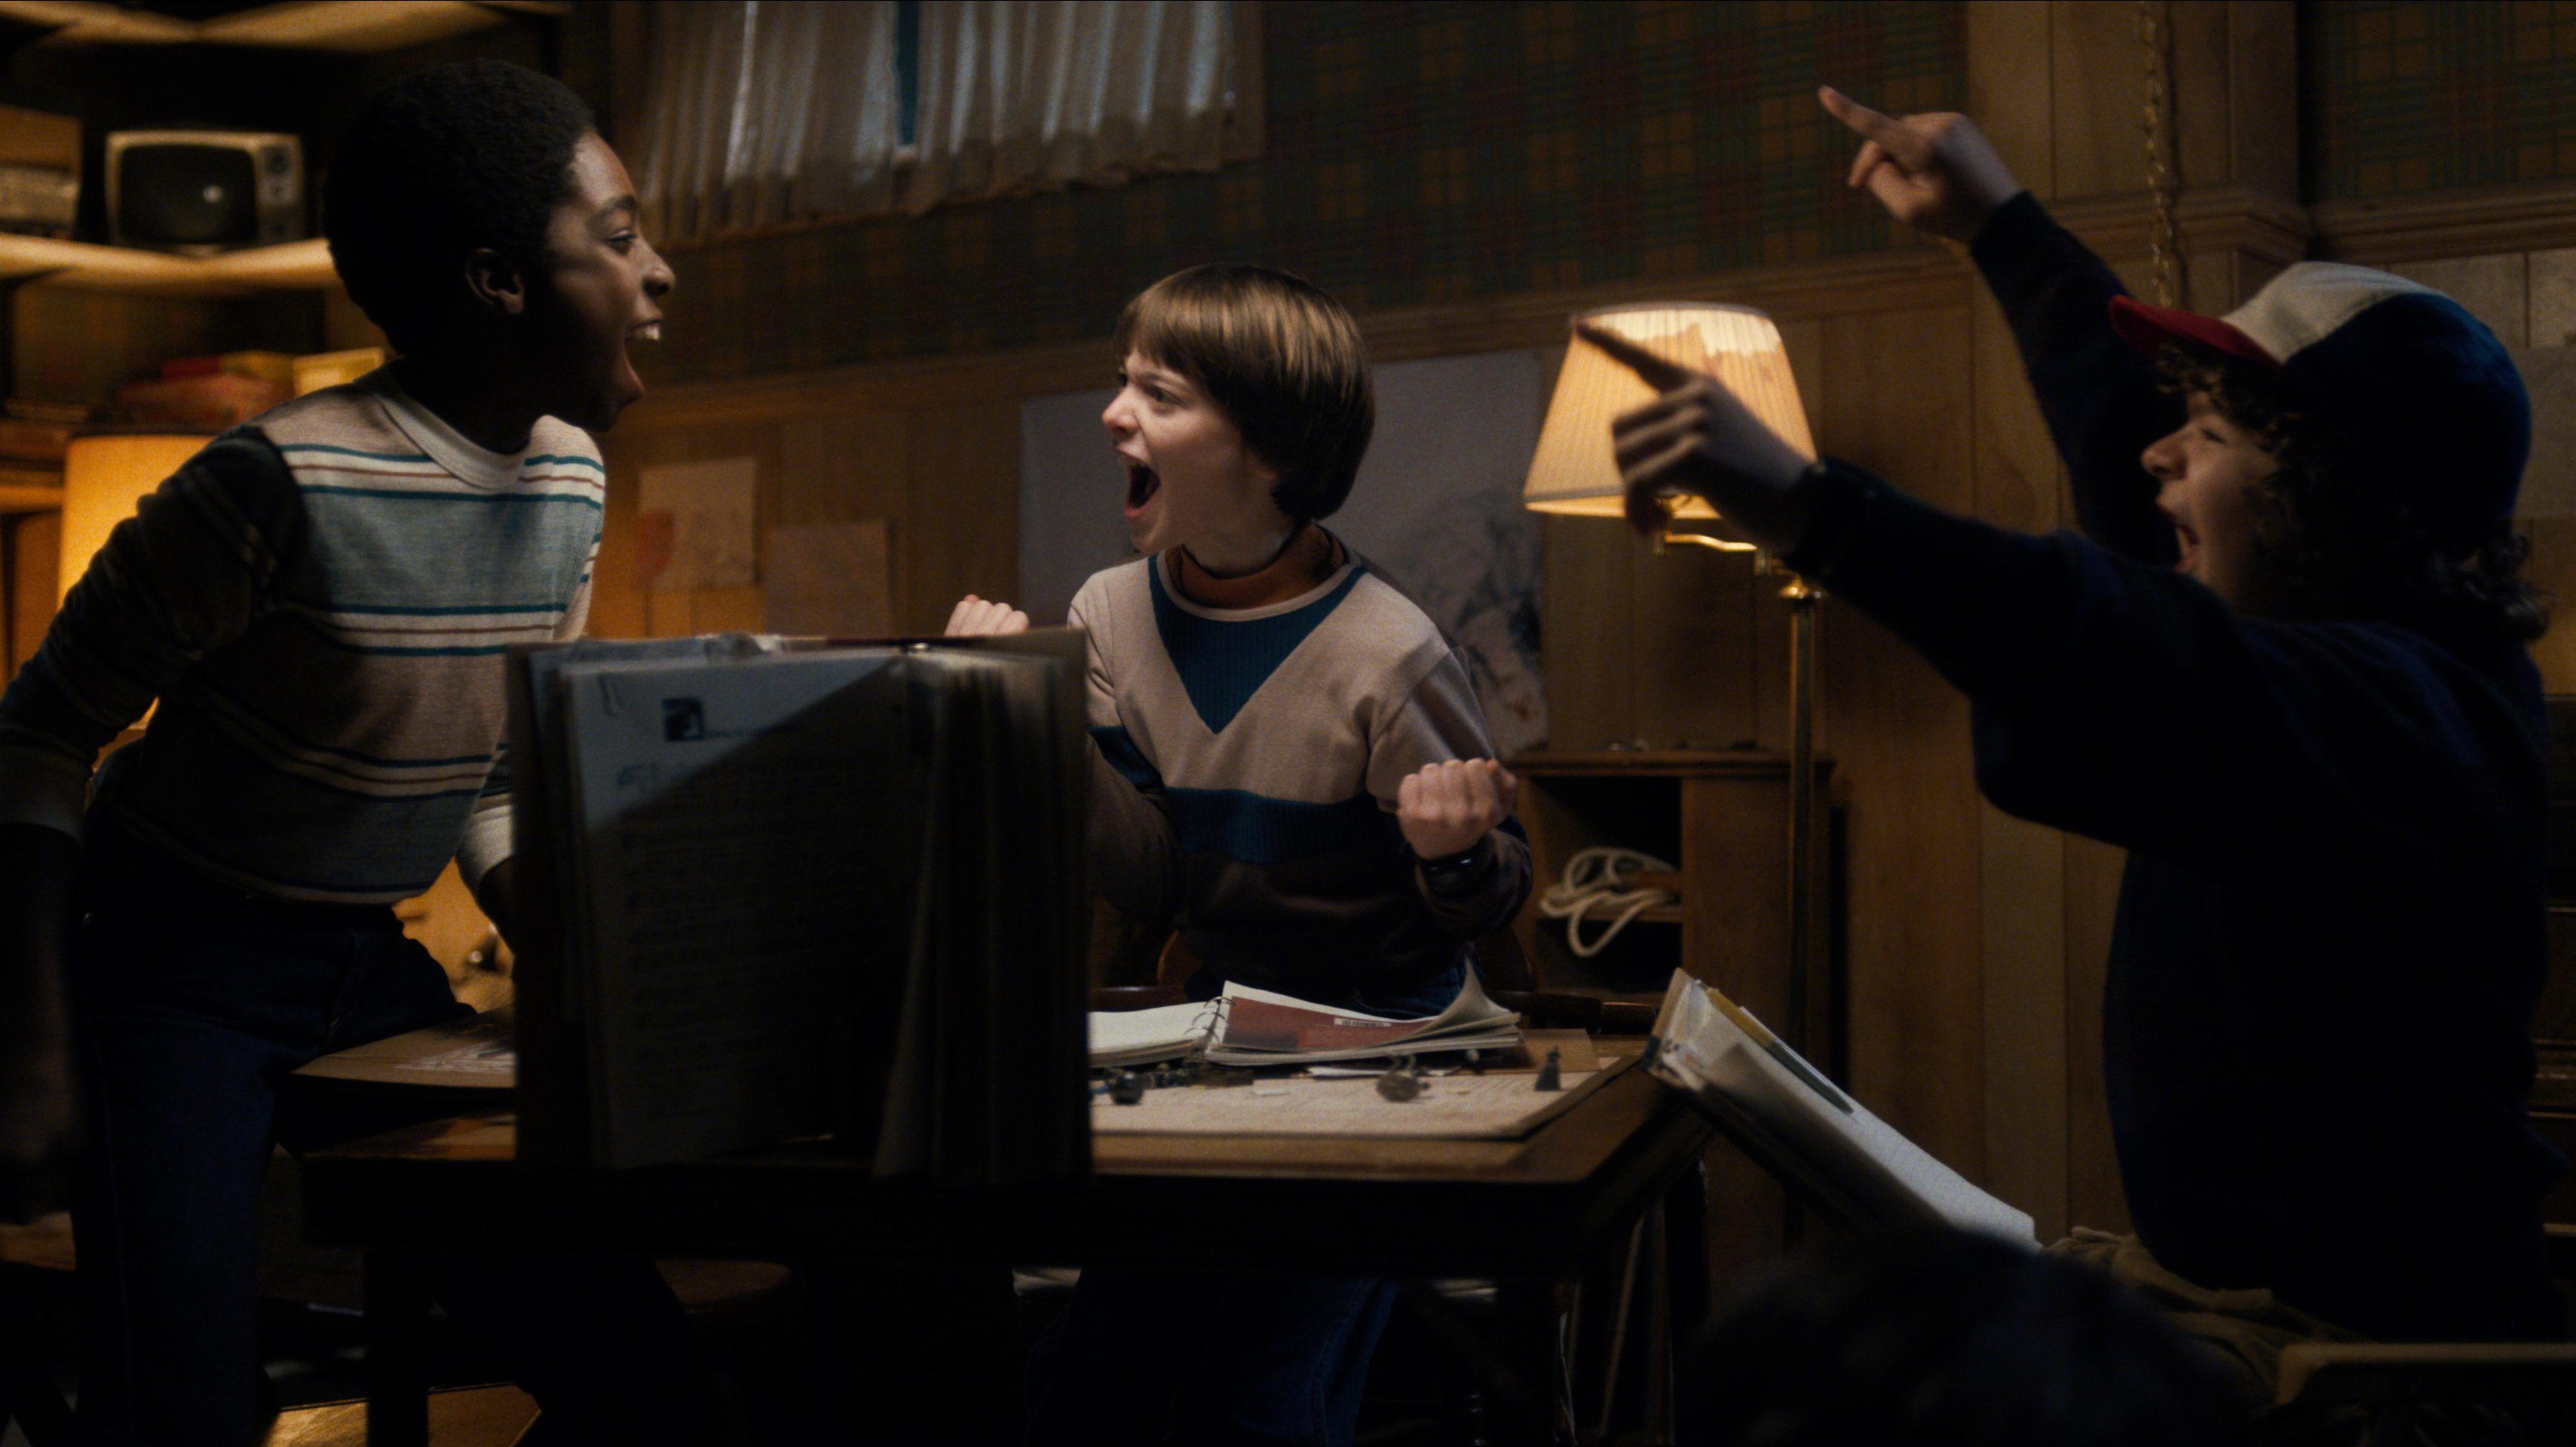 Stranger Things: Duffer Brothers have PROOF they didn't steal ideas